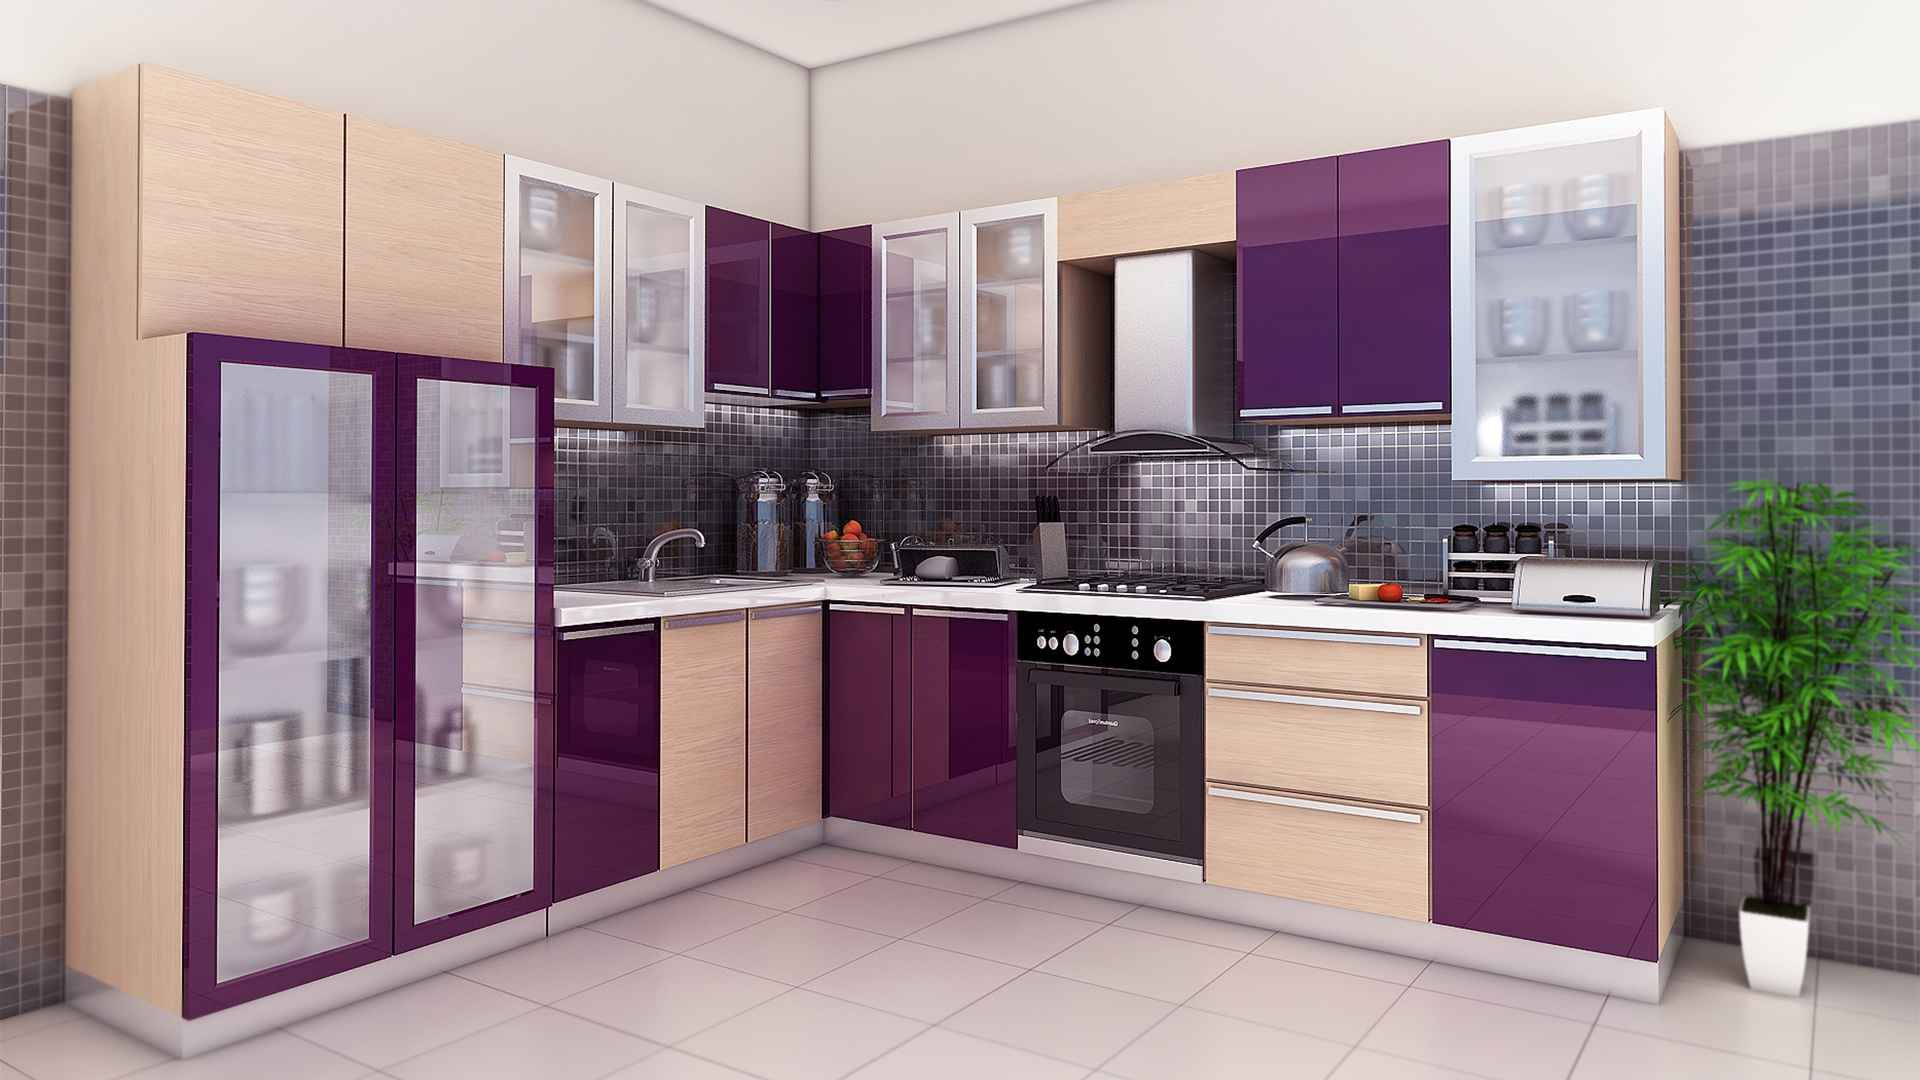 Small Violet Kitchen Renovation  Kitchen Design Ideas  All Impressive How To Design A Kitchen Renovation Design Inspiration